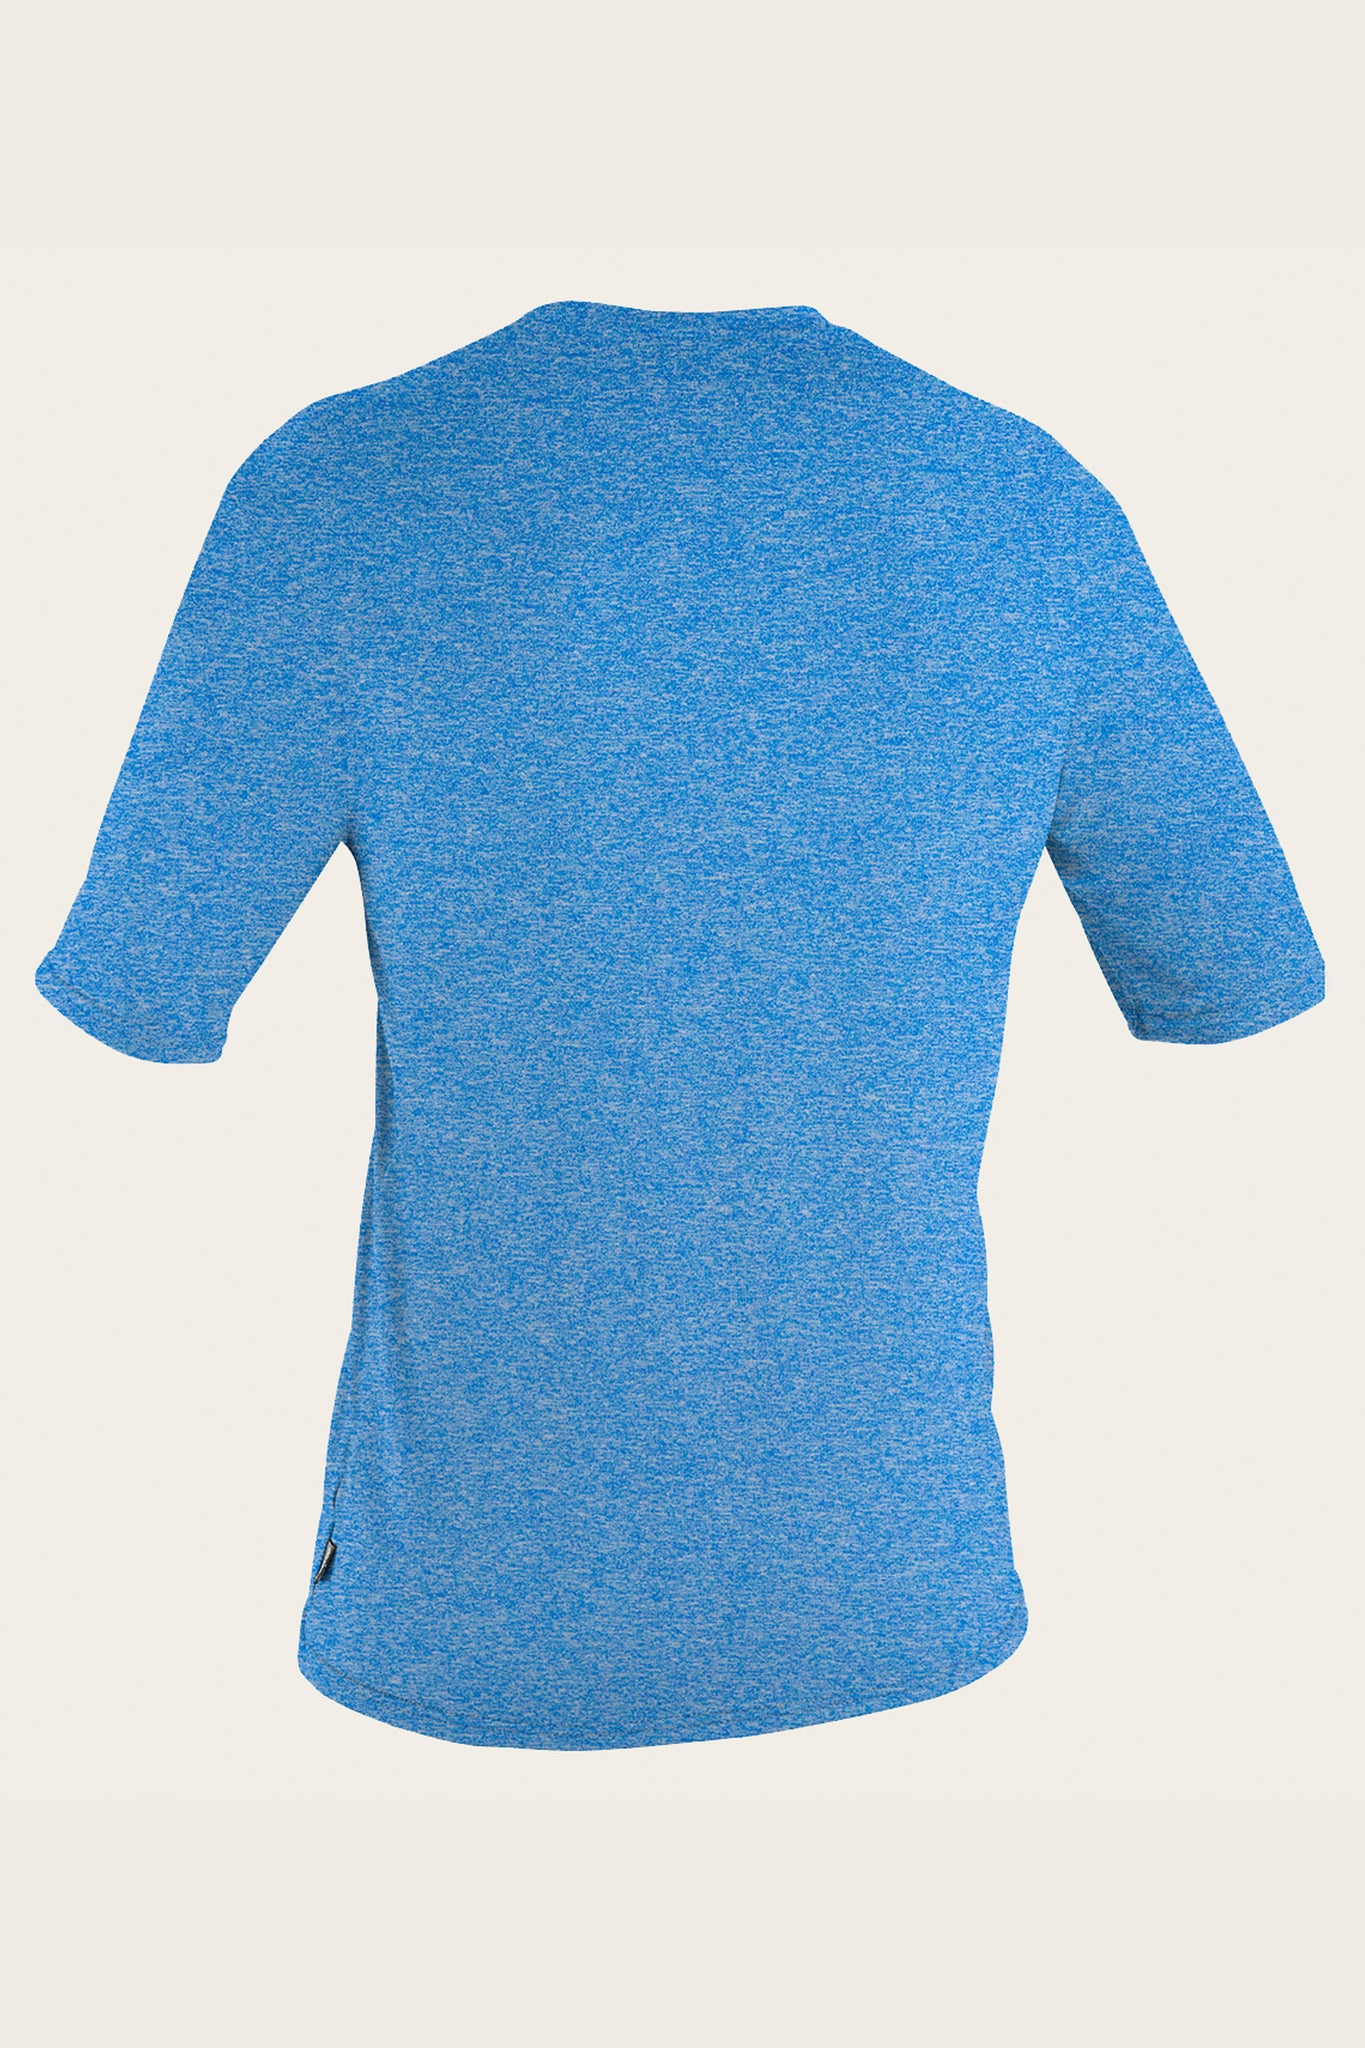 Youth Hybrid S/S Sun Shirt - Brite Blue | O'Neill